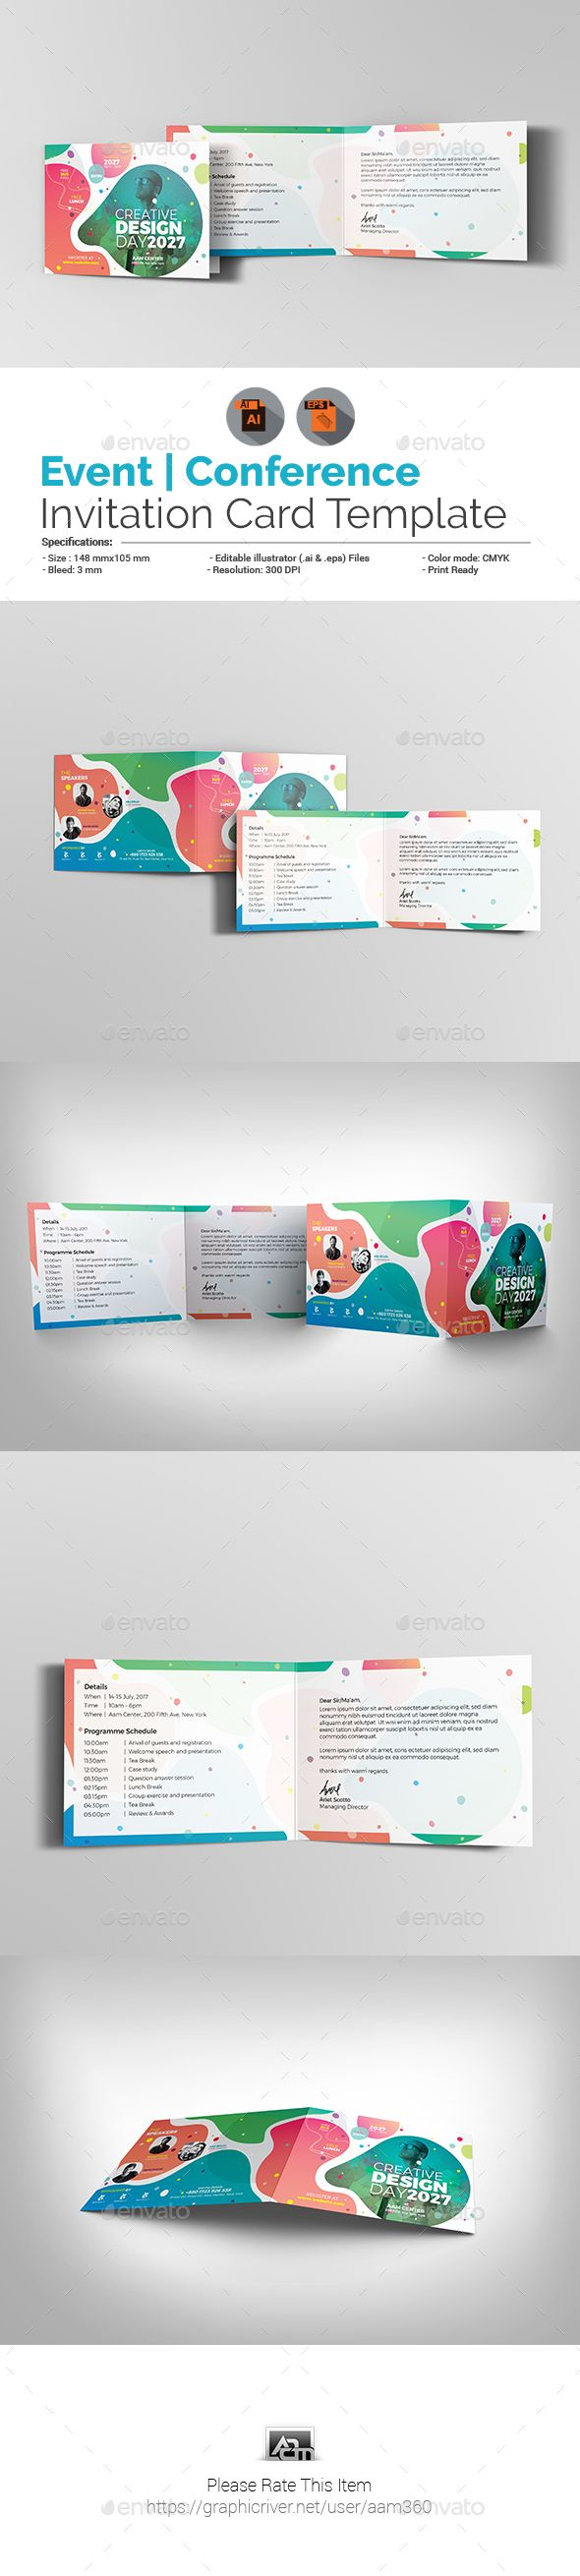 EventConference Invitation Card Template  Card Templates